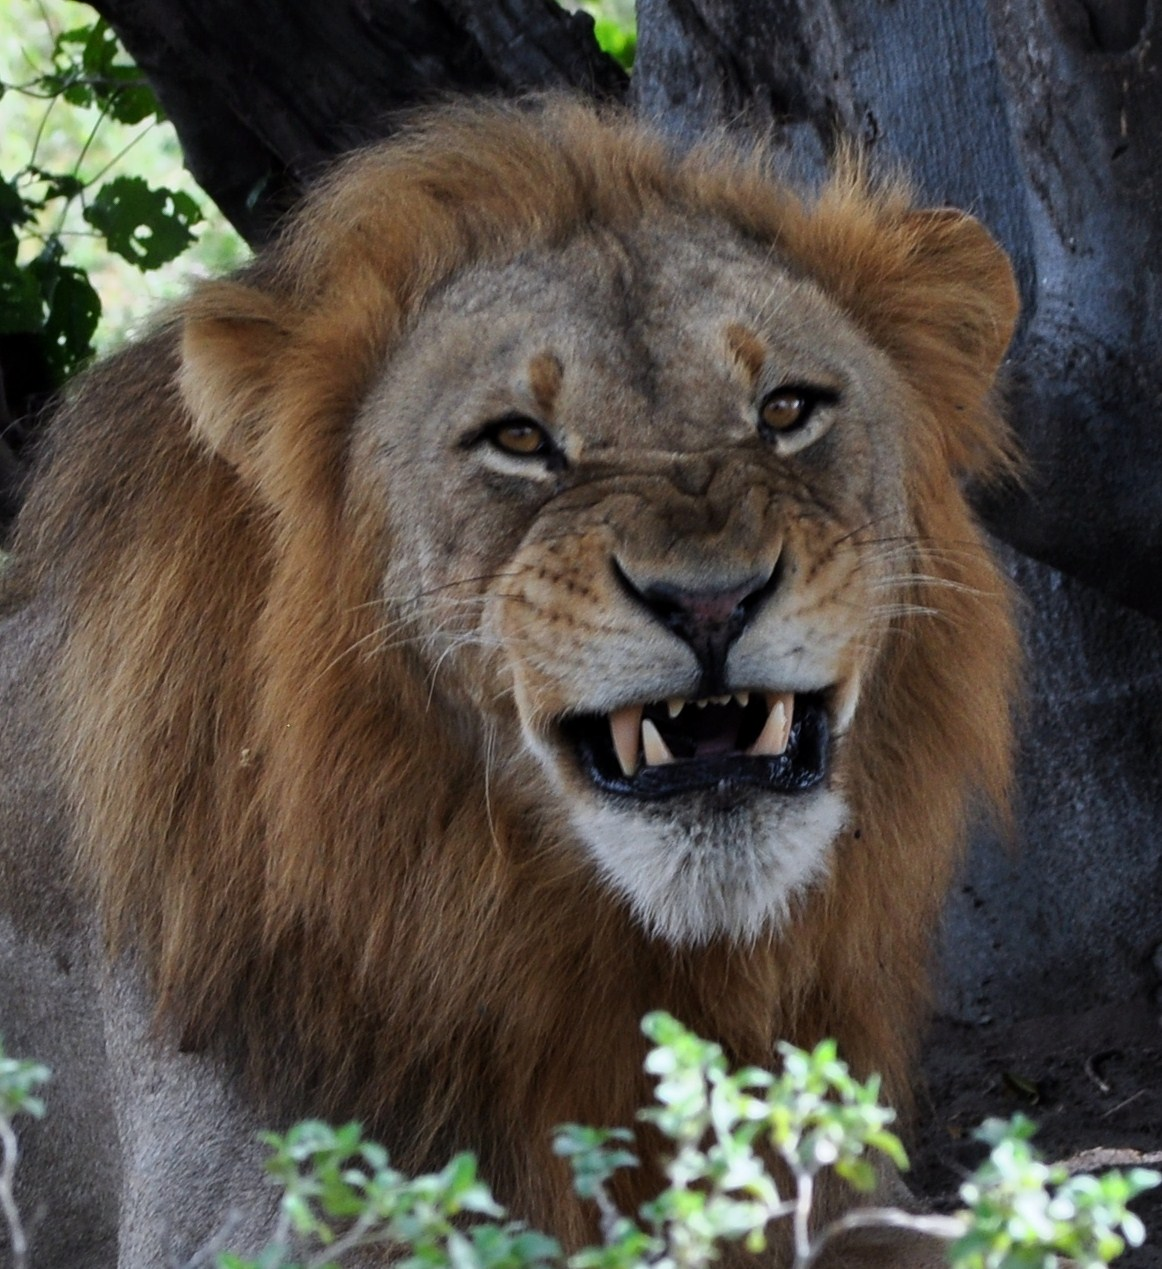 Hugh and Kathy: Ever had a lion smile at you?